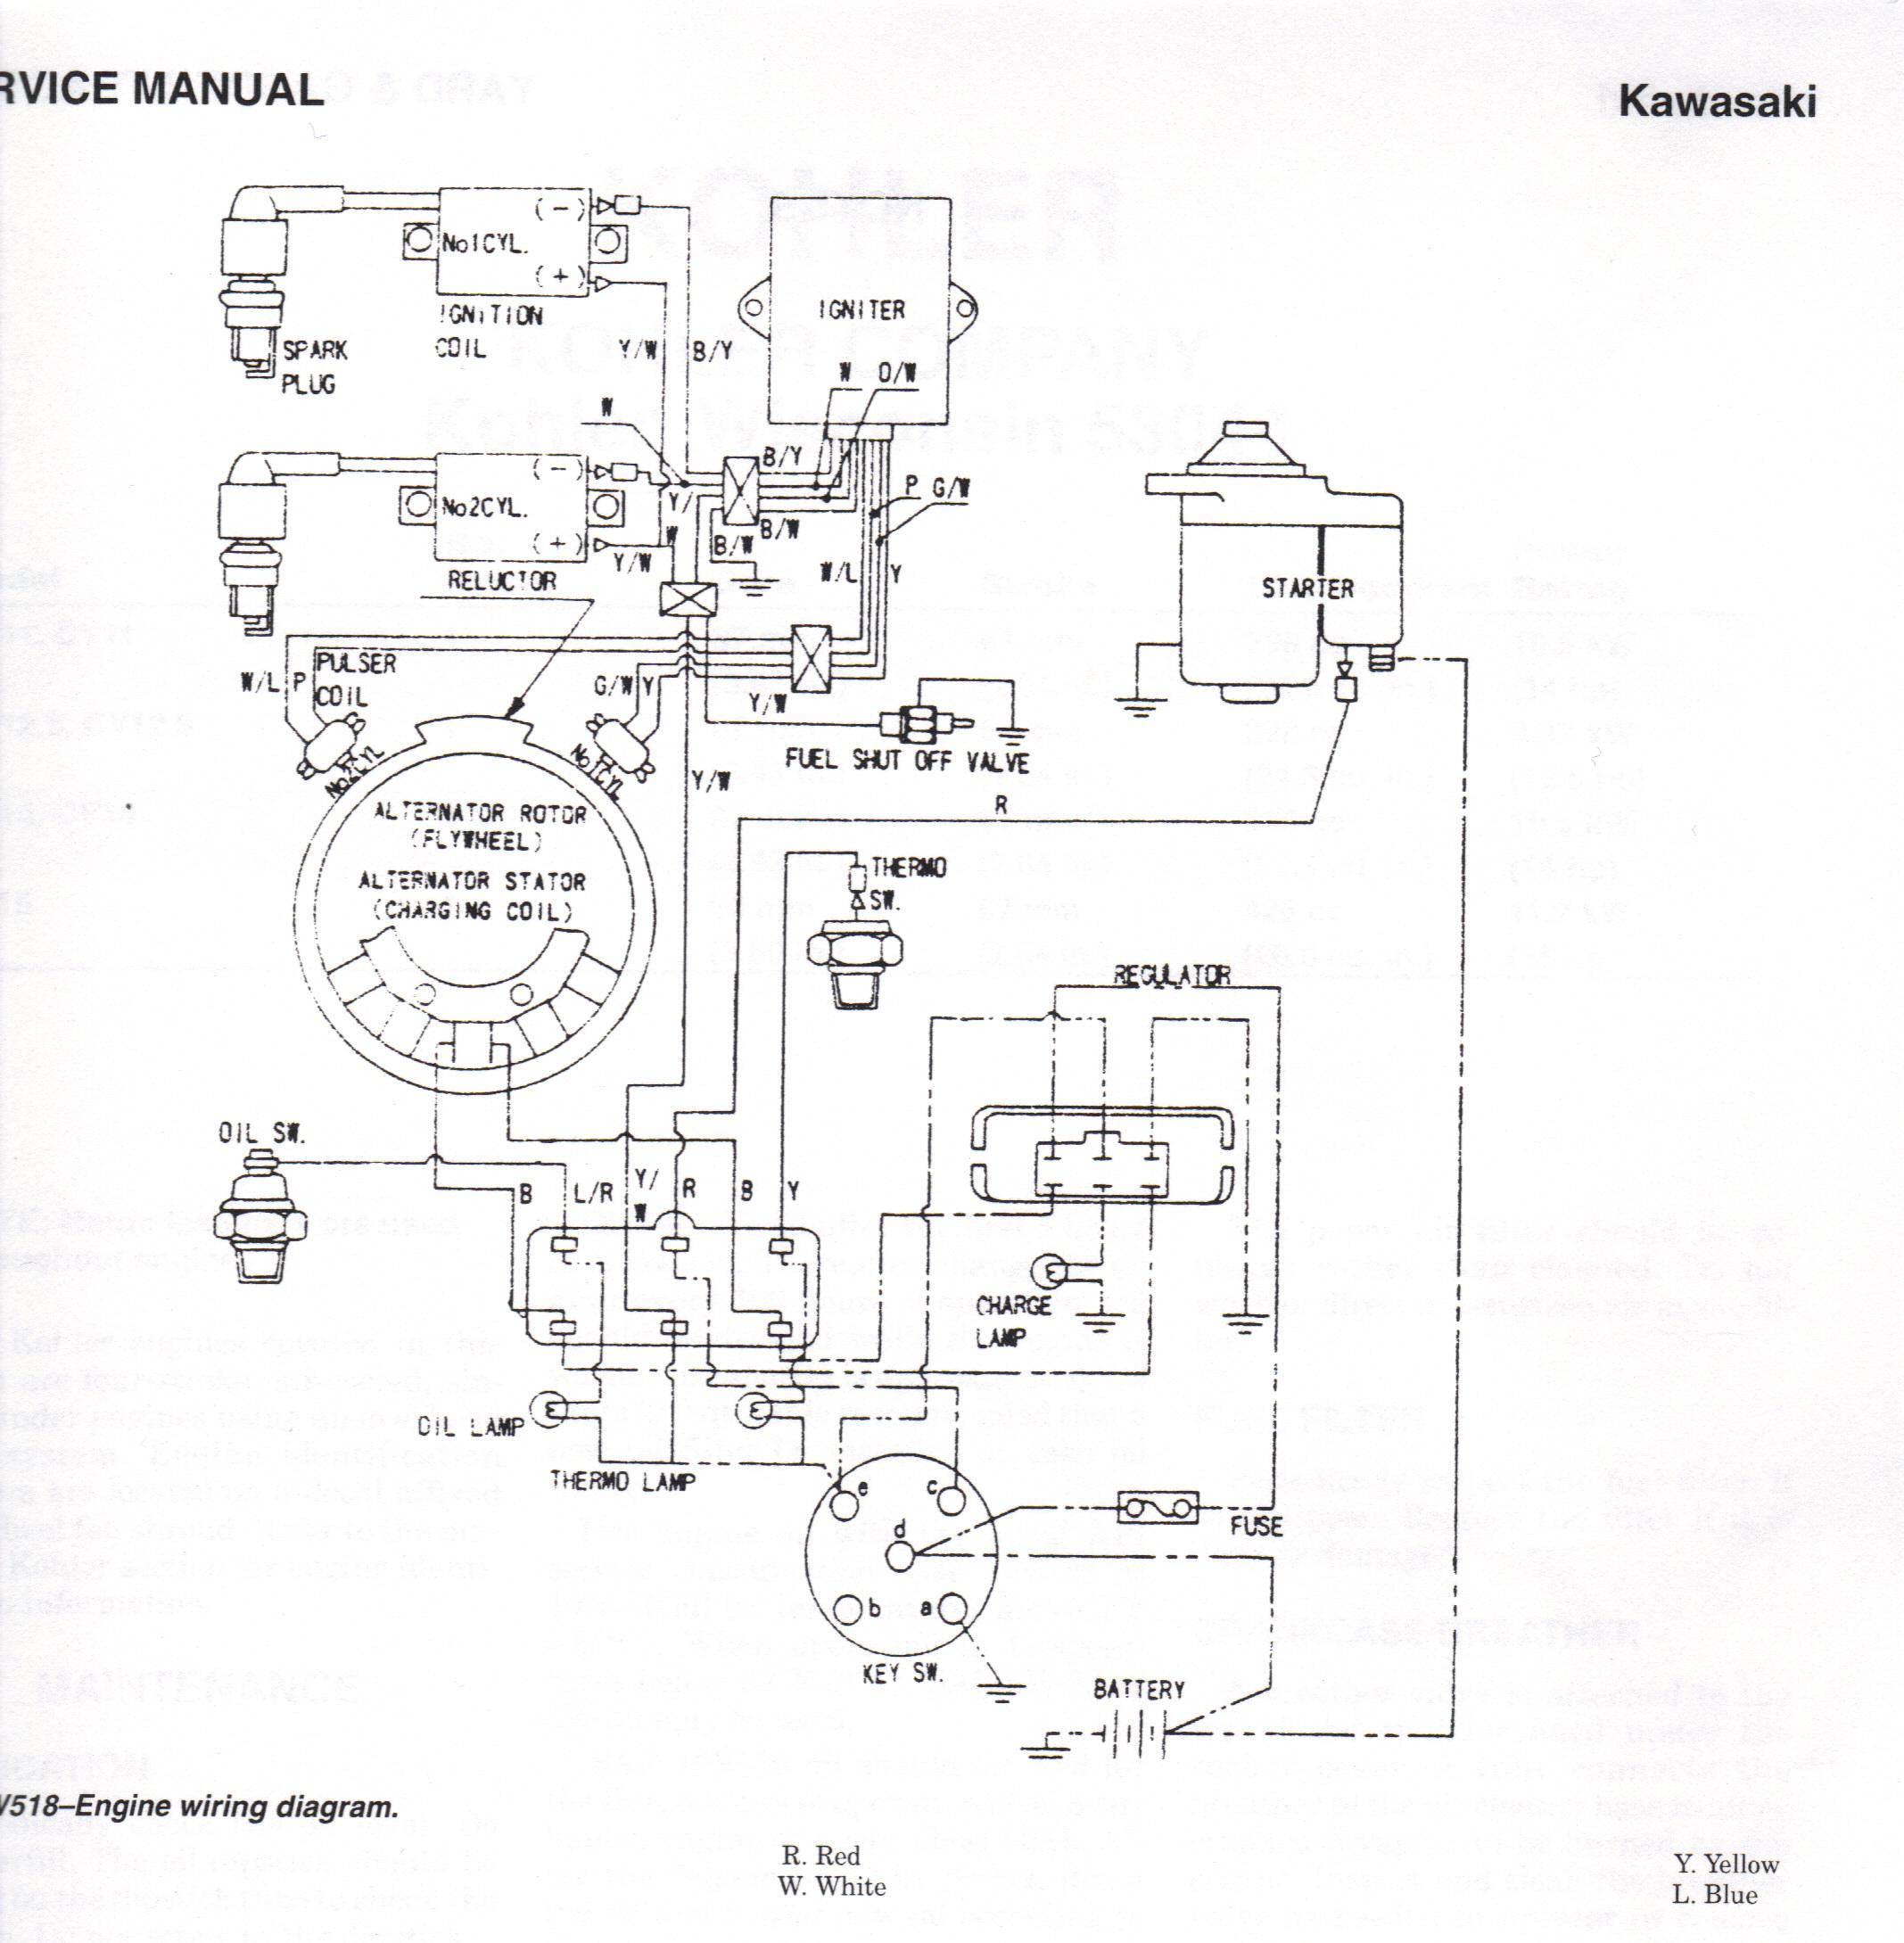 apache atv 100 wiring diagram wiring diagrams apache atv 100 wiring diagram digital